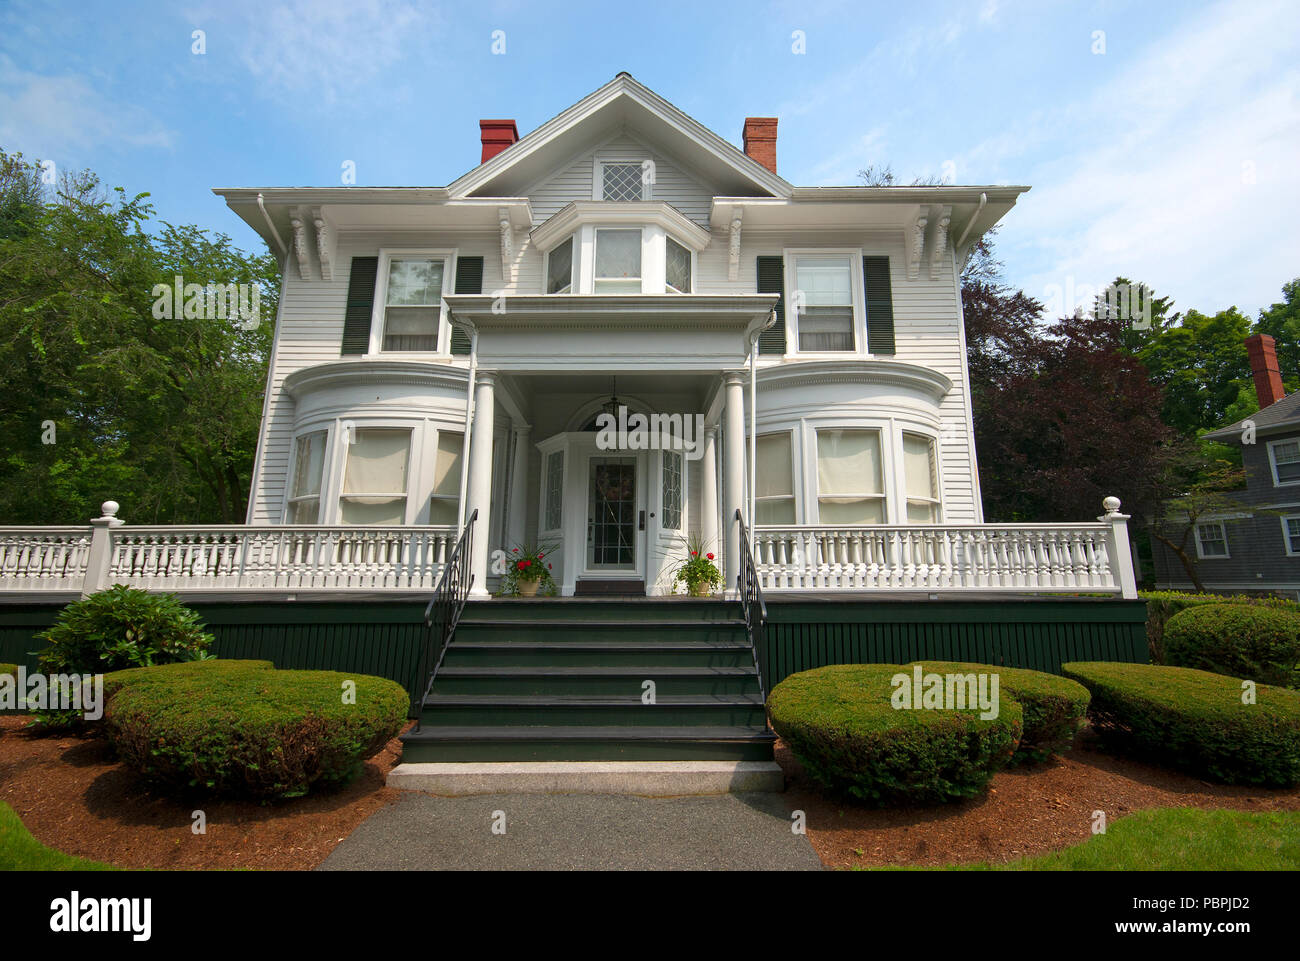 Stately house in Lexington, Middlesex County, Massachusetts, USA Stock Photo